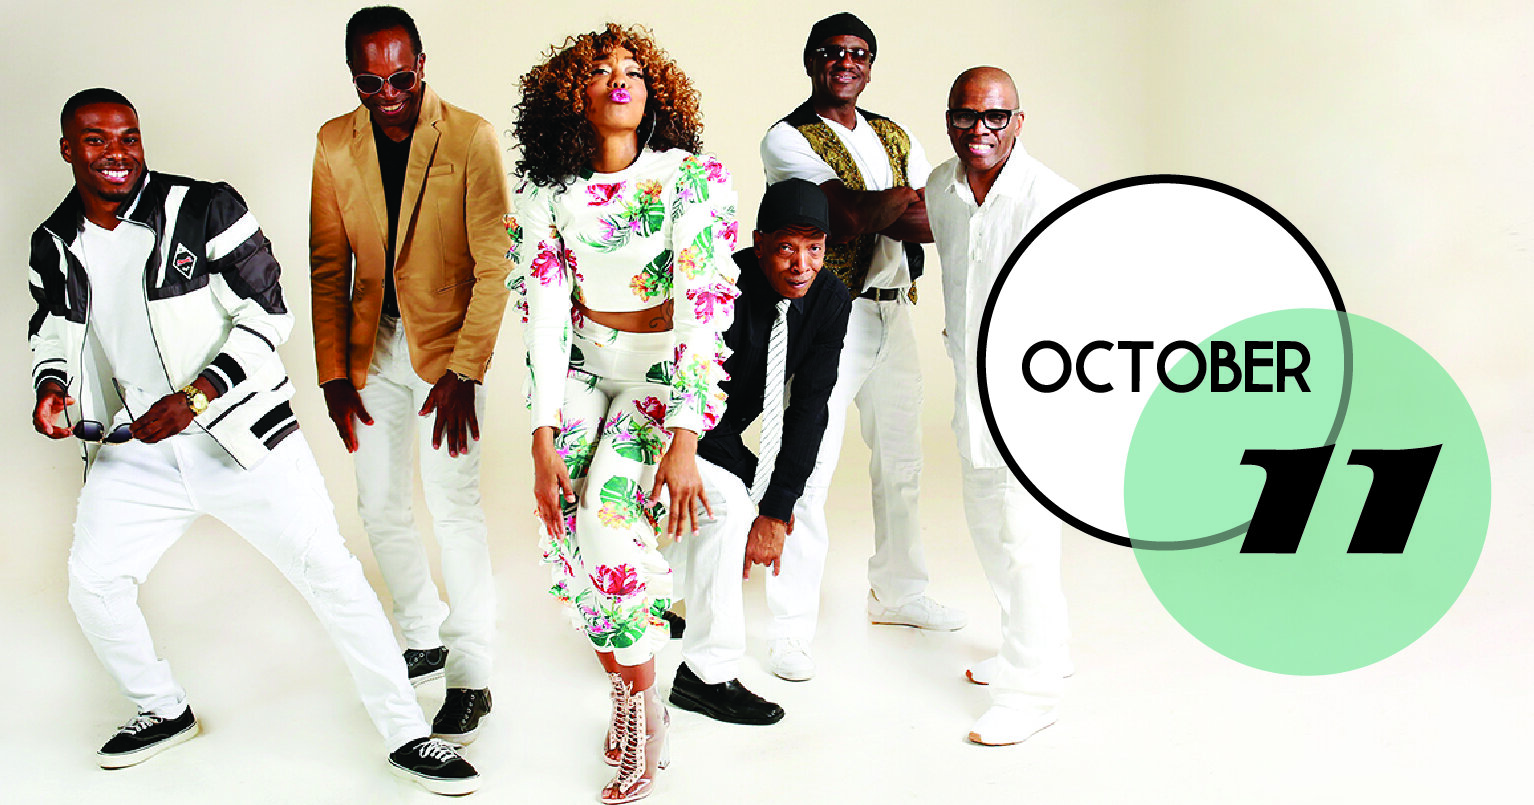 Join Friday, October 11, from 6 to 9 p.m. on the Village Green. This family-friendly, outdoor concert will feature The Maxx, a party band performing a variety of hits from oldies to Top 40. The concert is free, and guests are encouraged to bring a beach chair or blanket.